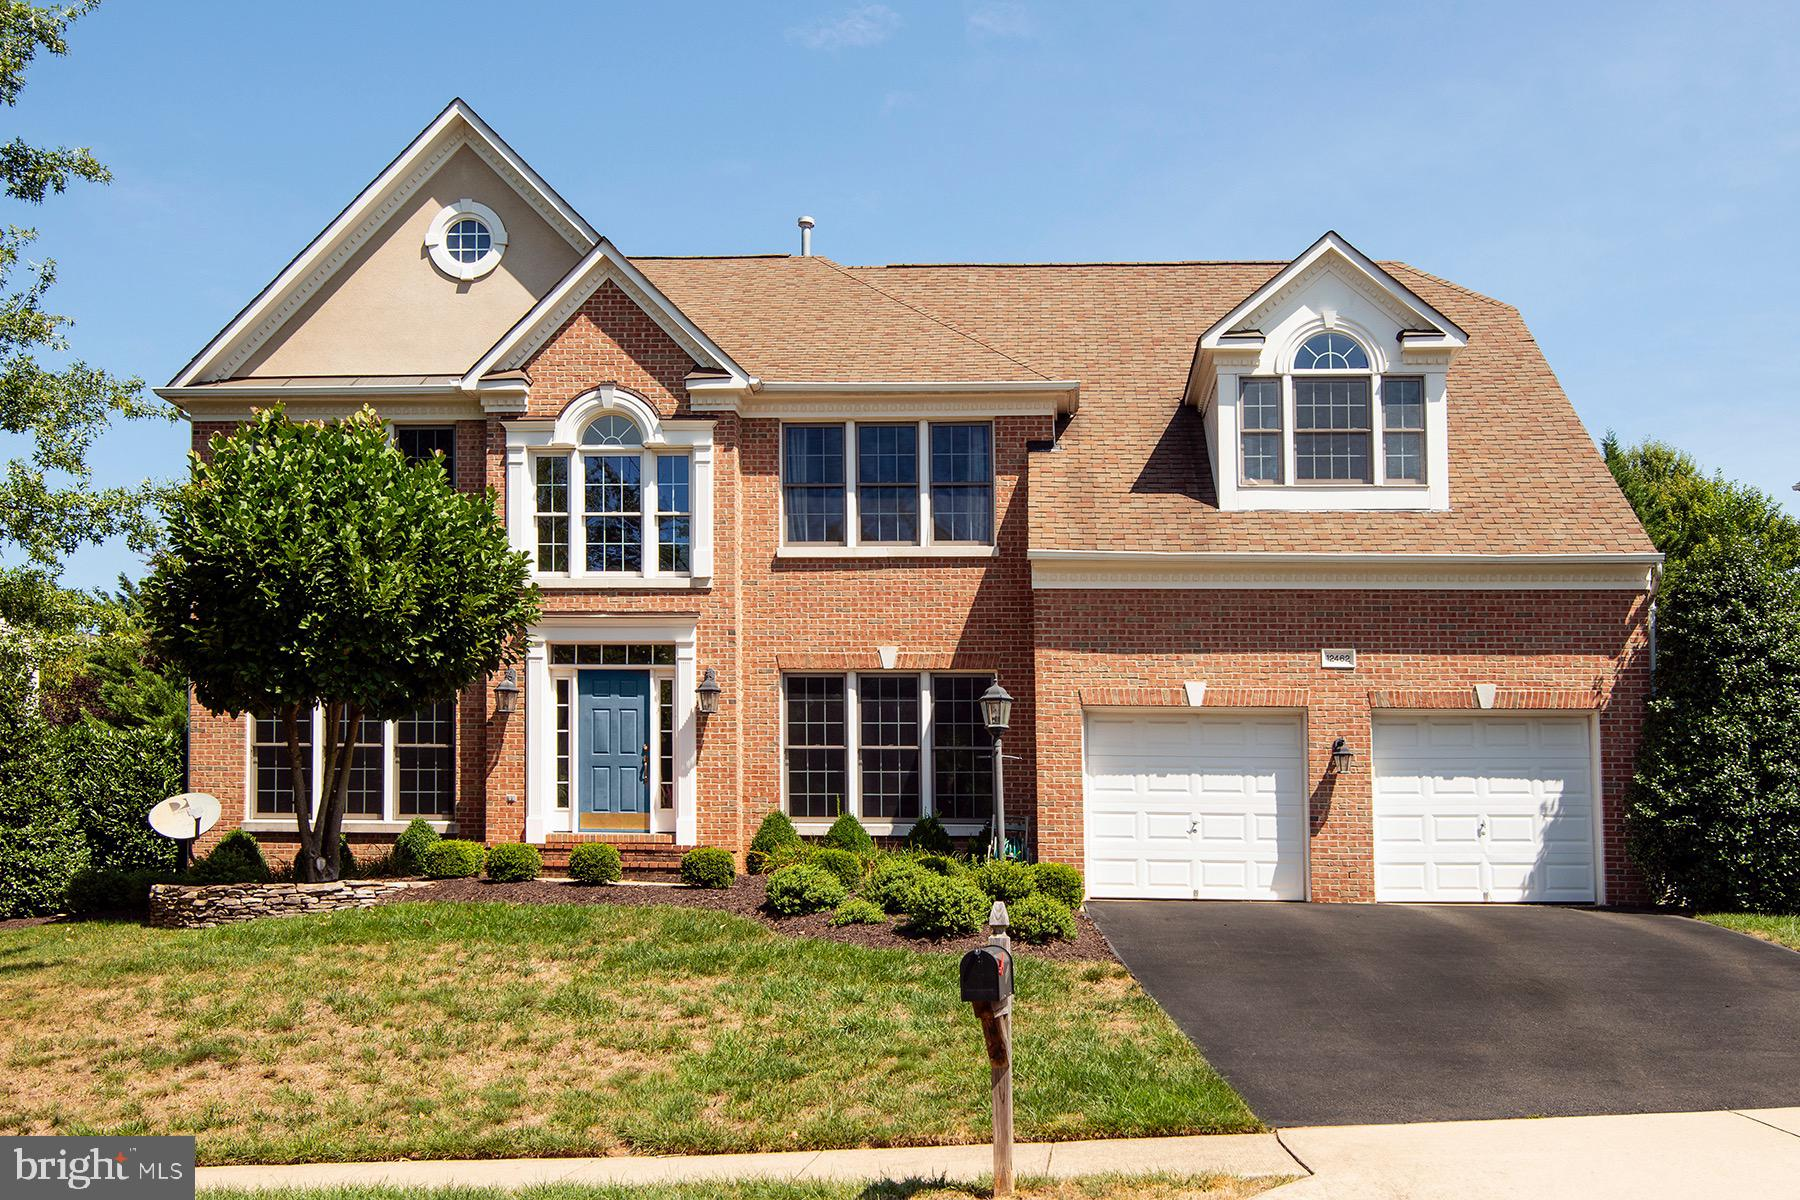 12462 MEADOW HUNT DRIVE, FAIRFAX, VA 22033